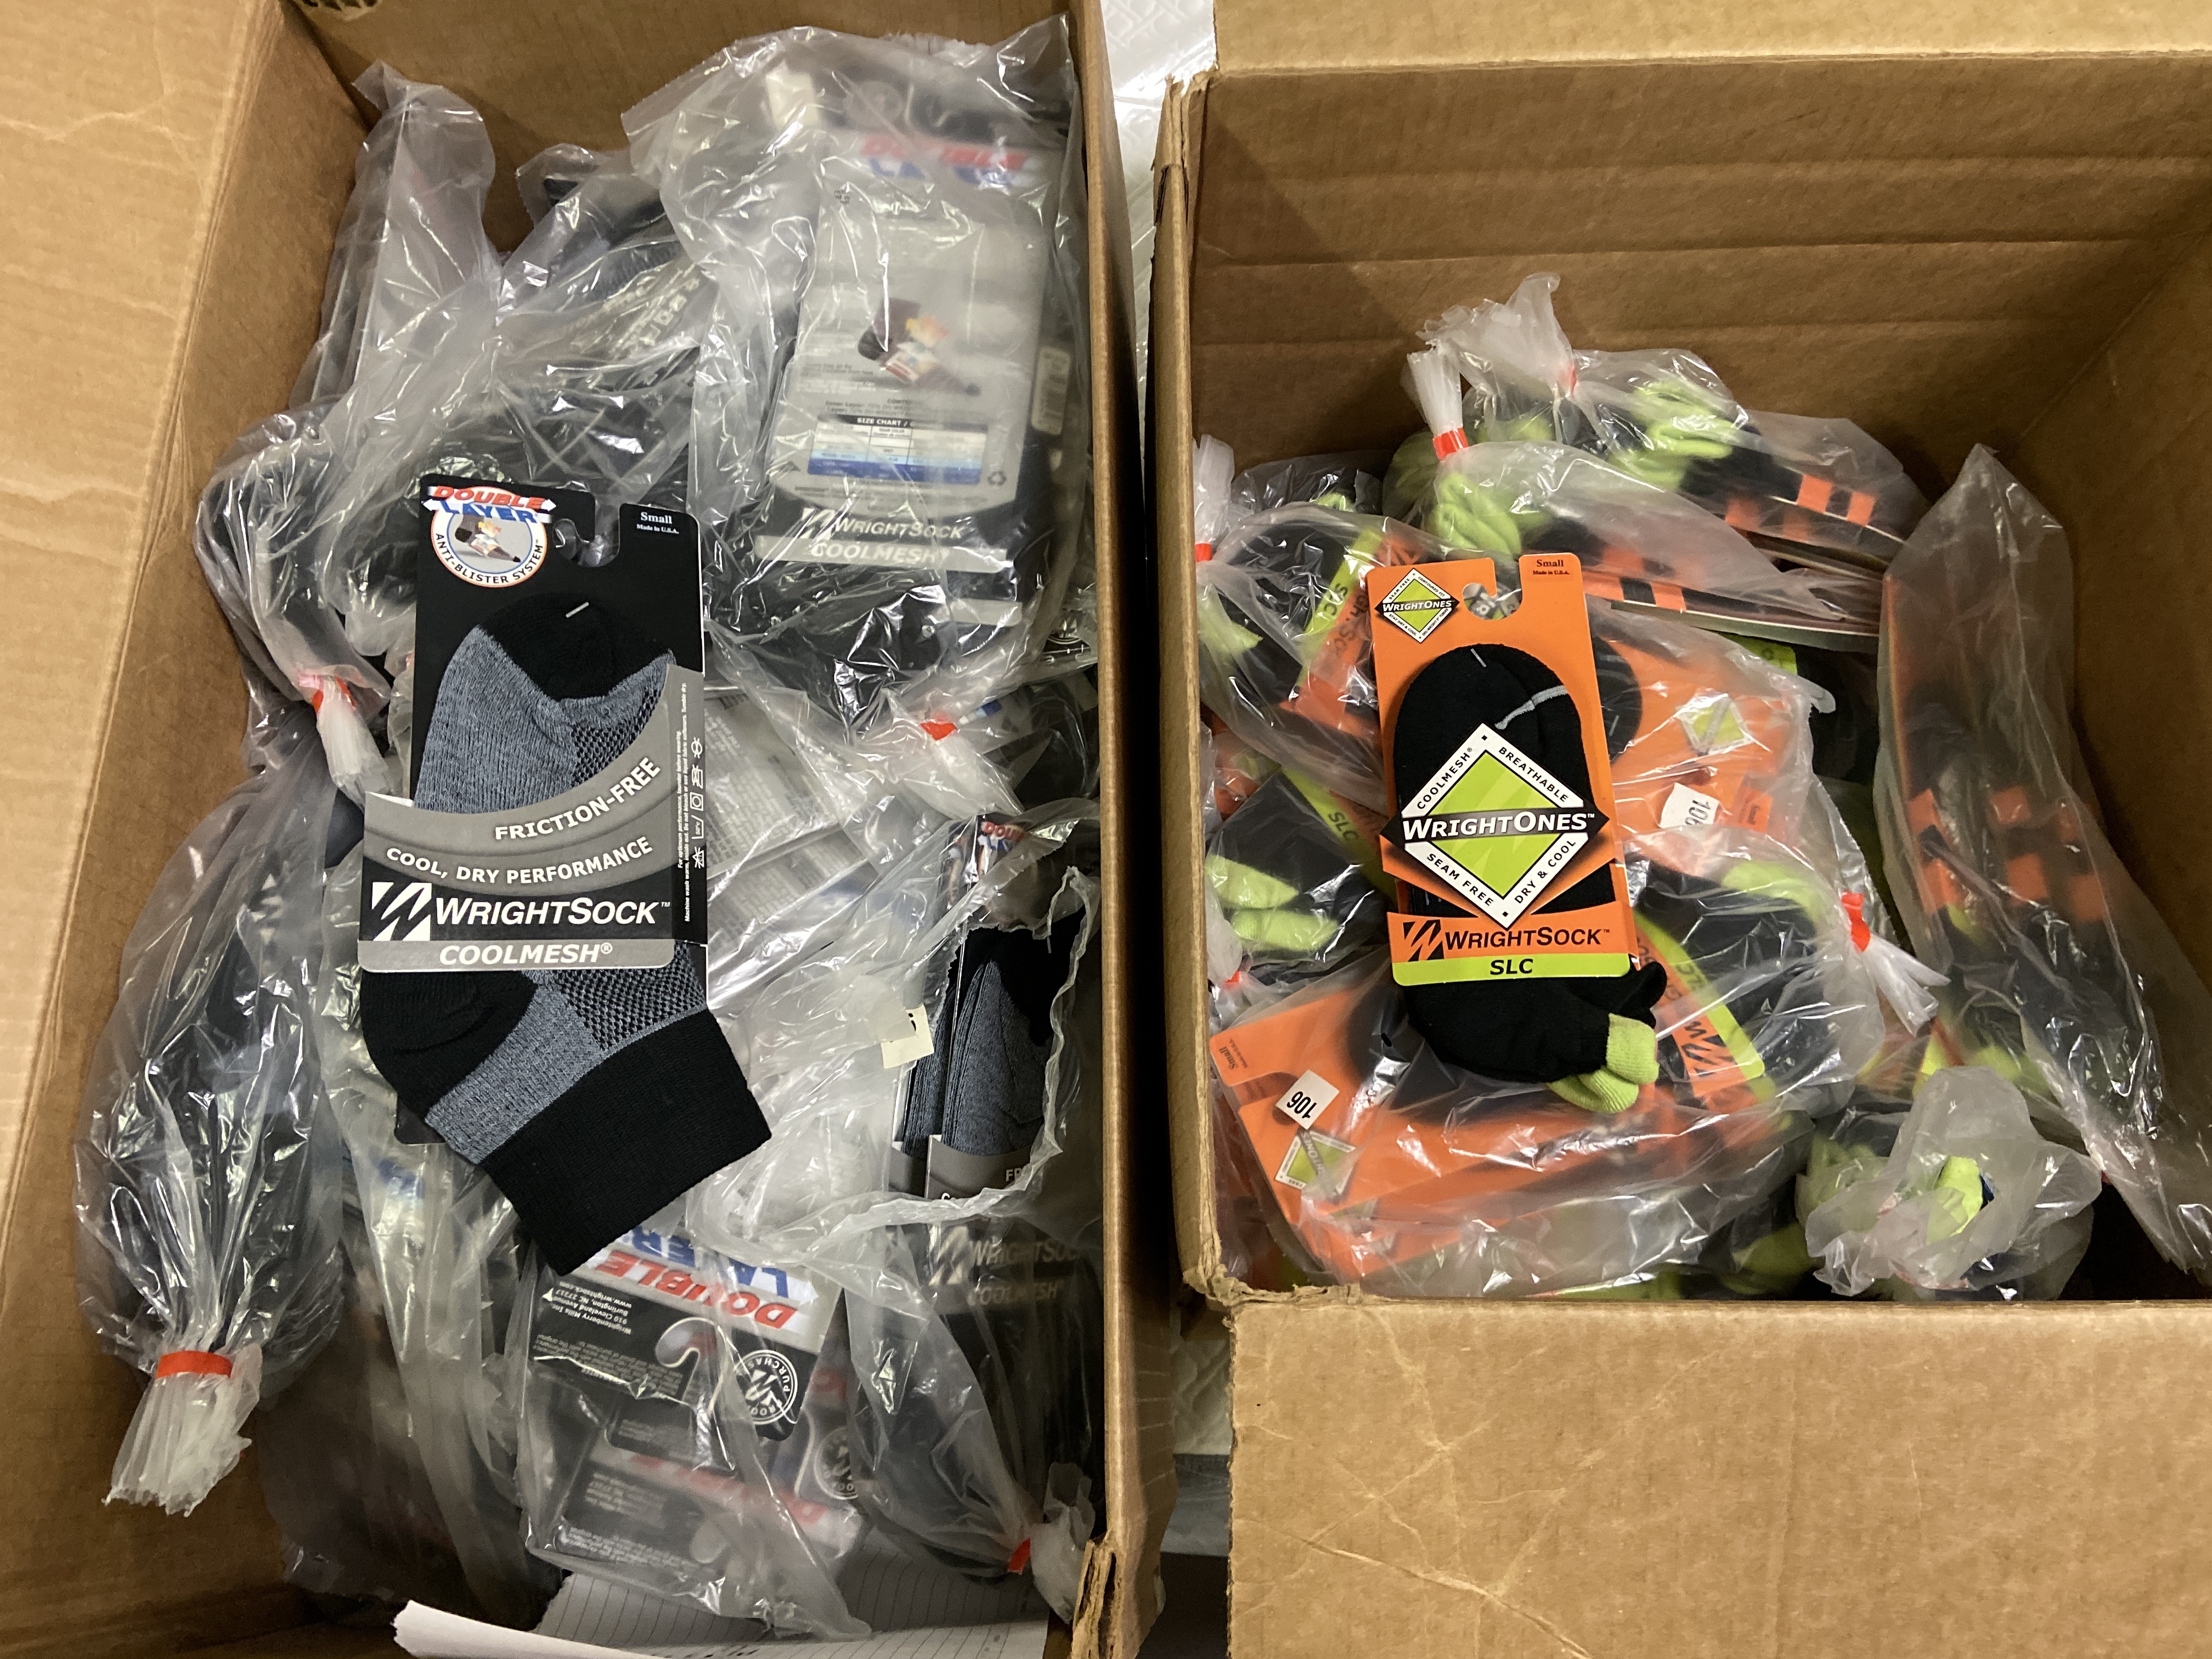 150+ packs of New Socks, Wrightsocks Coolmesh and SLC, Various Black Styles/Colors